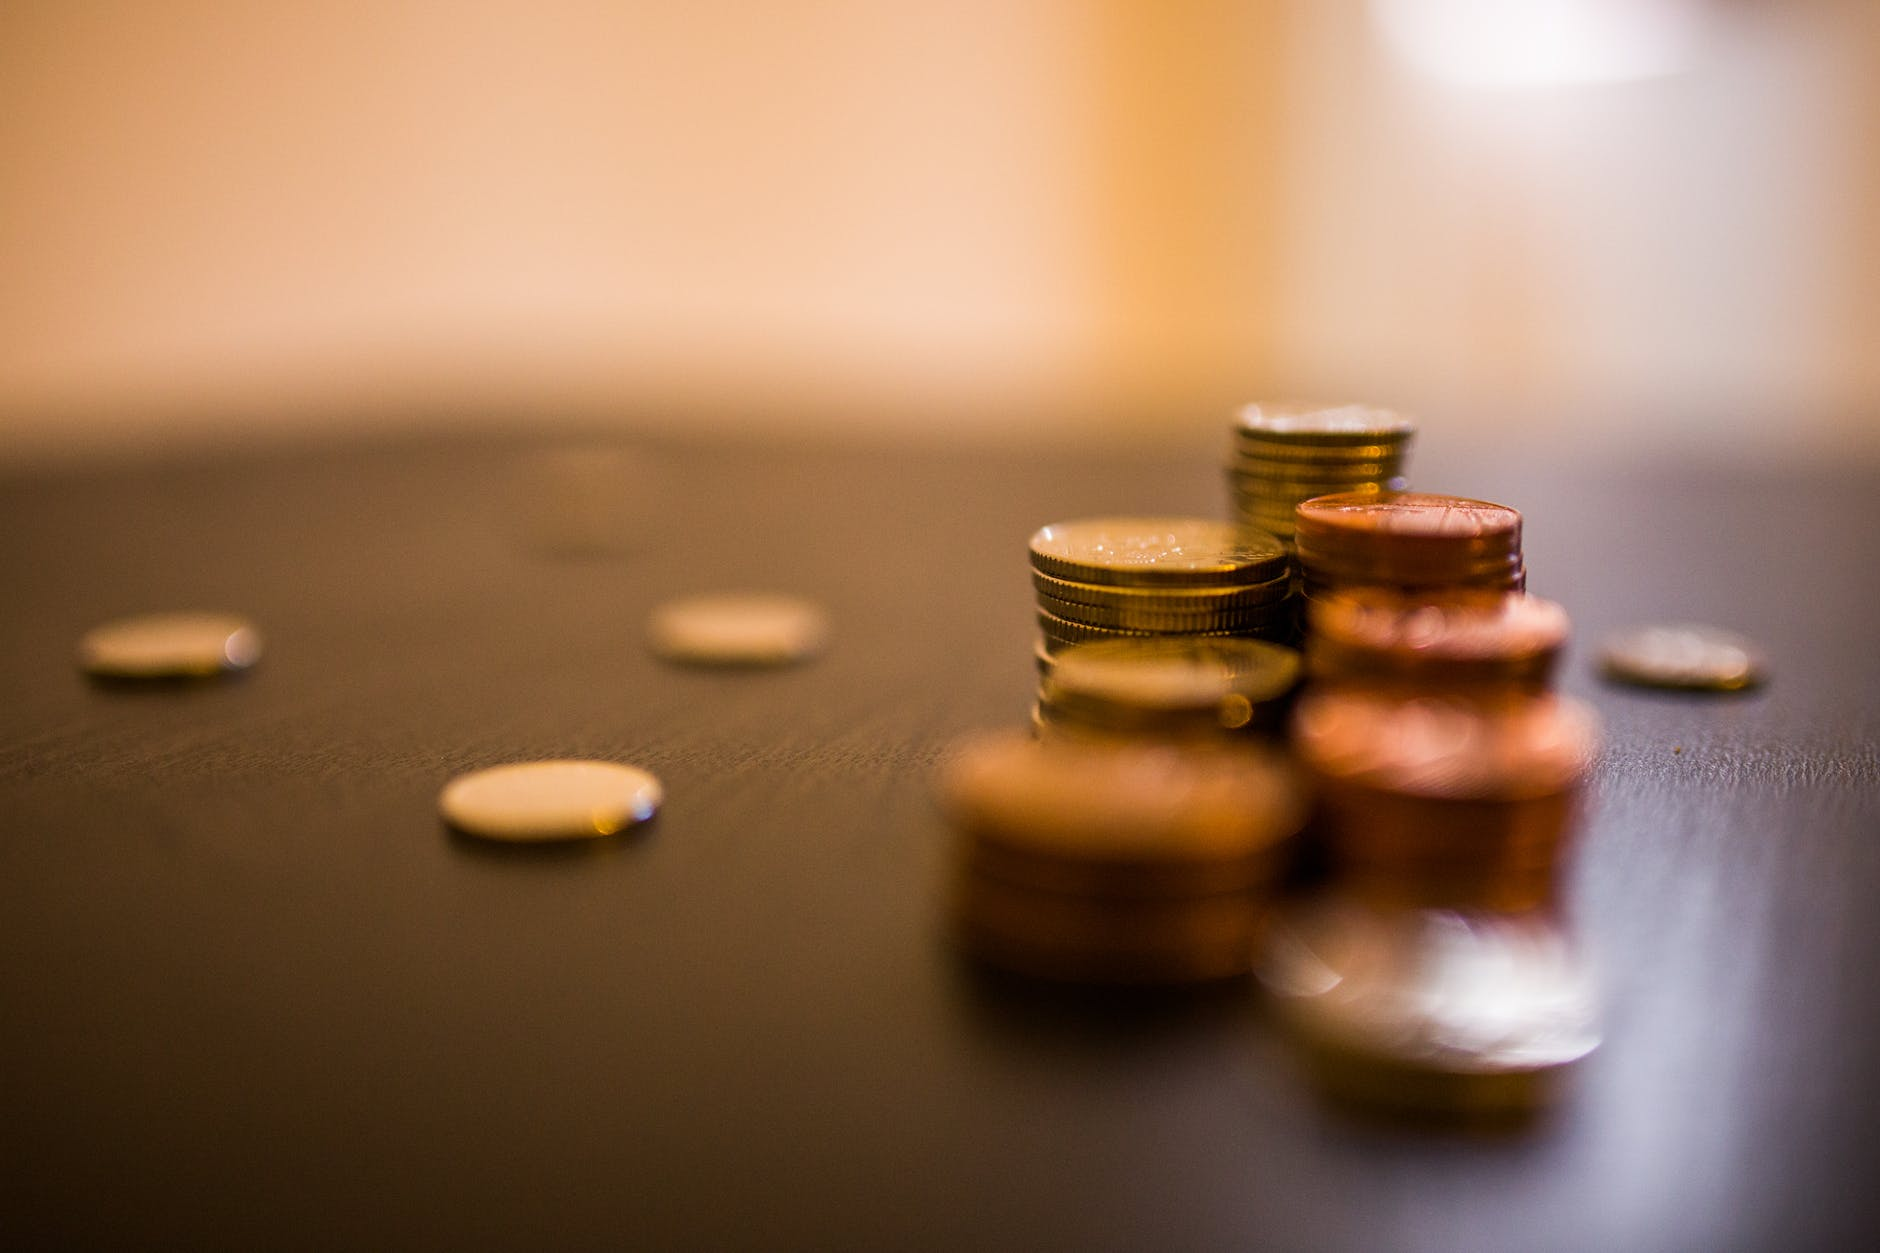 A few stacks of coins on the table. If you negotiate your rent, you will save more than a few coins.